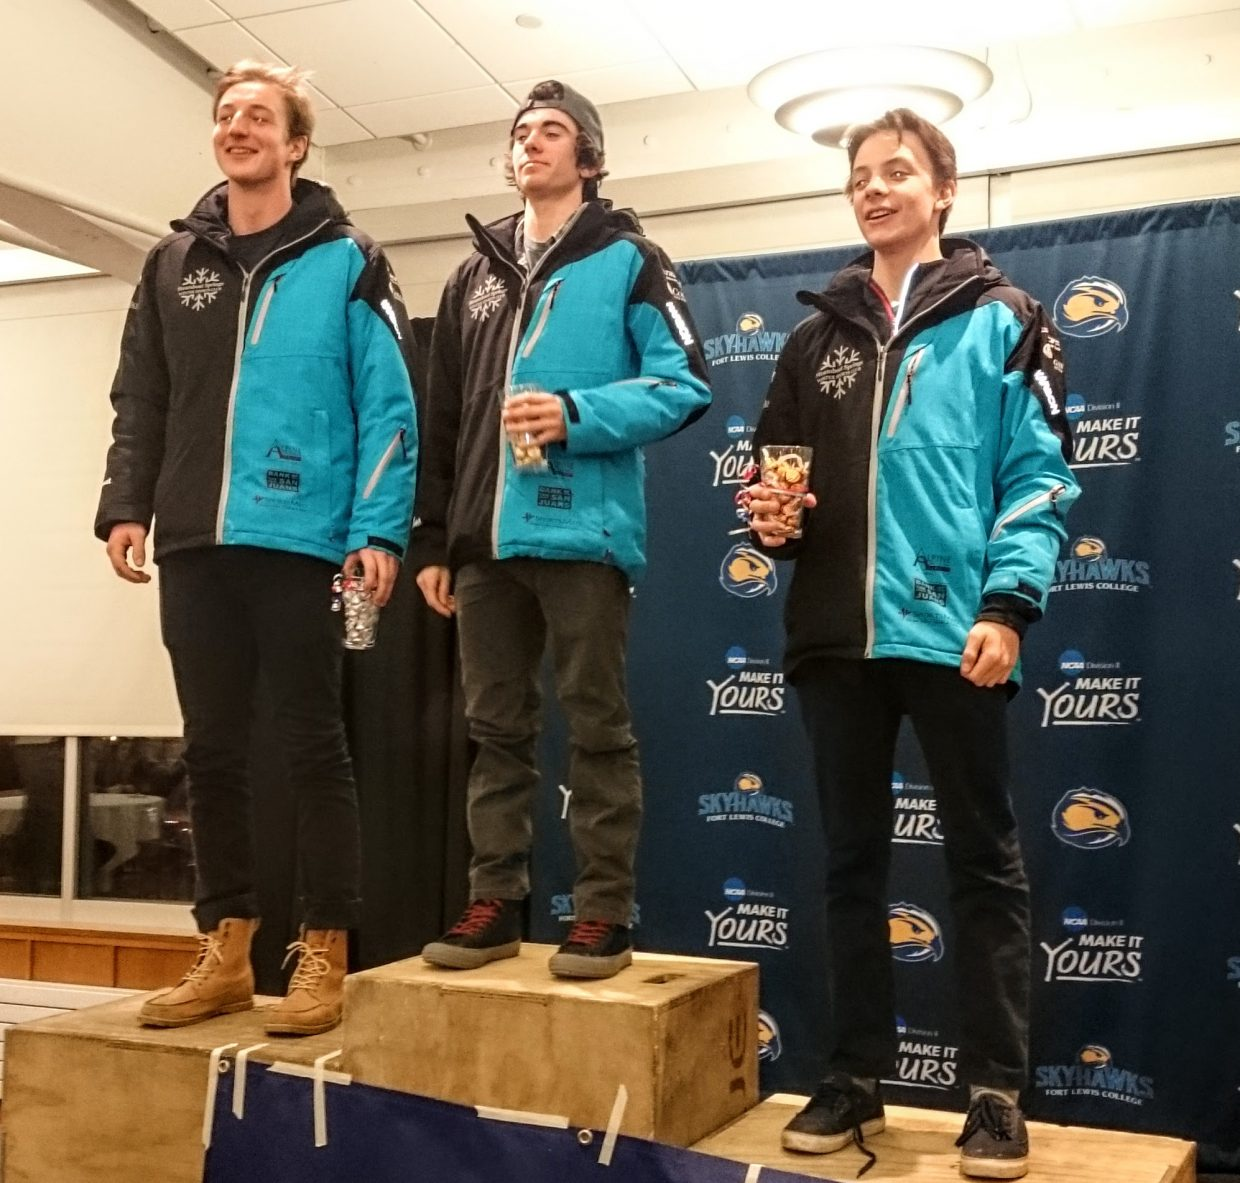 Steamboat Springs skiers pulled off a sweep on Saturday in a 10K mass start event for U20/18 skiers in Durango. Wyatt Gebhardt won, Noel Keeffe was second and Sven Tate third.